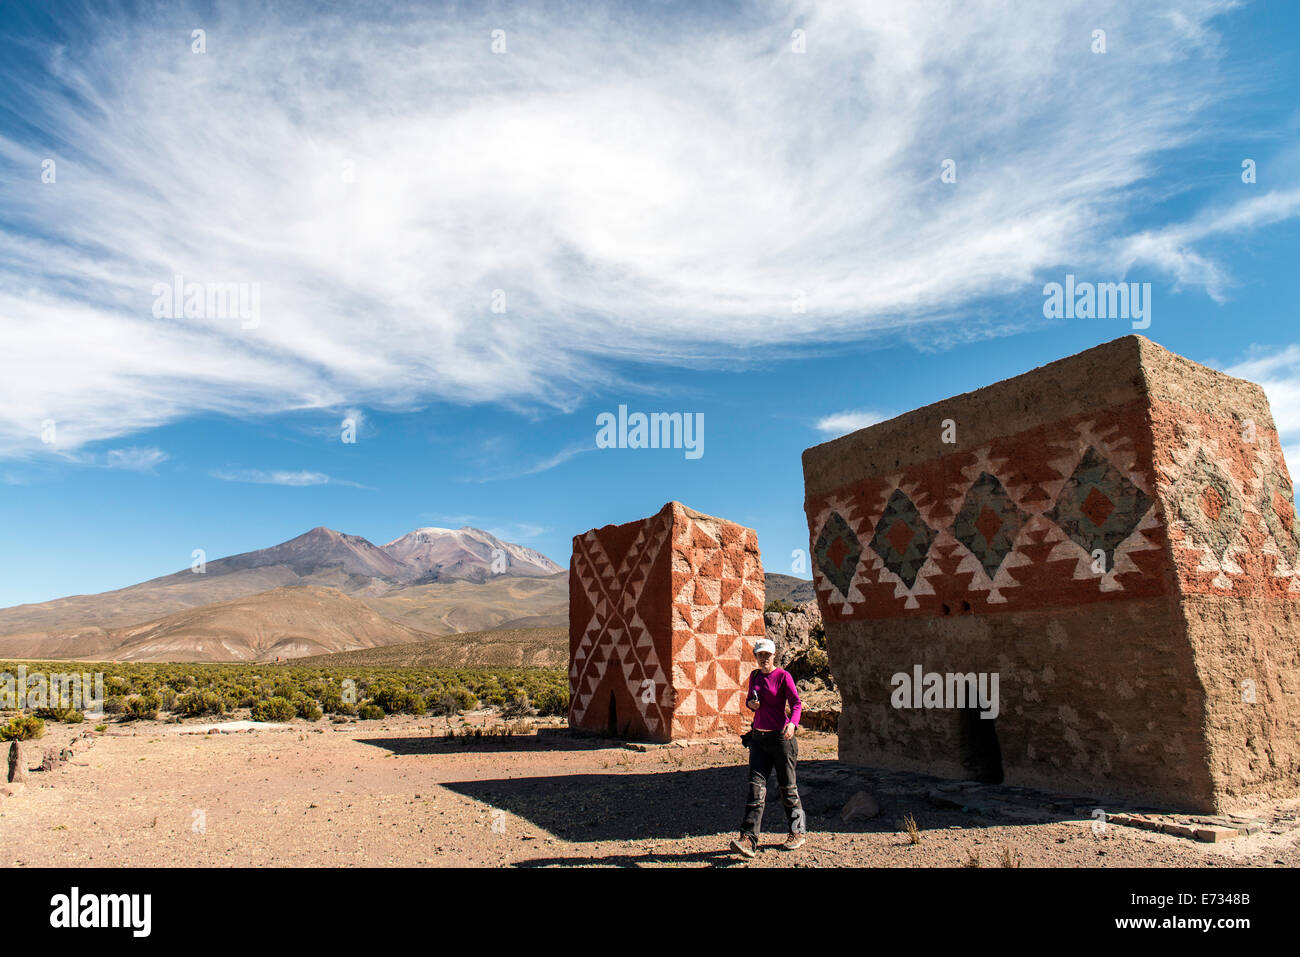 Woman walking by Coloured chullpas or burial towers (Pre-colonial tombs) in Rio Lauca valley, Bolivia, South America - Stock Image